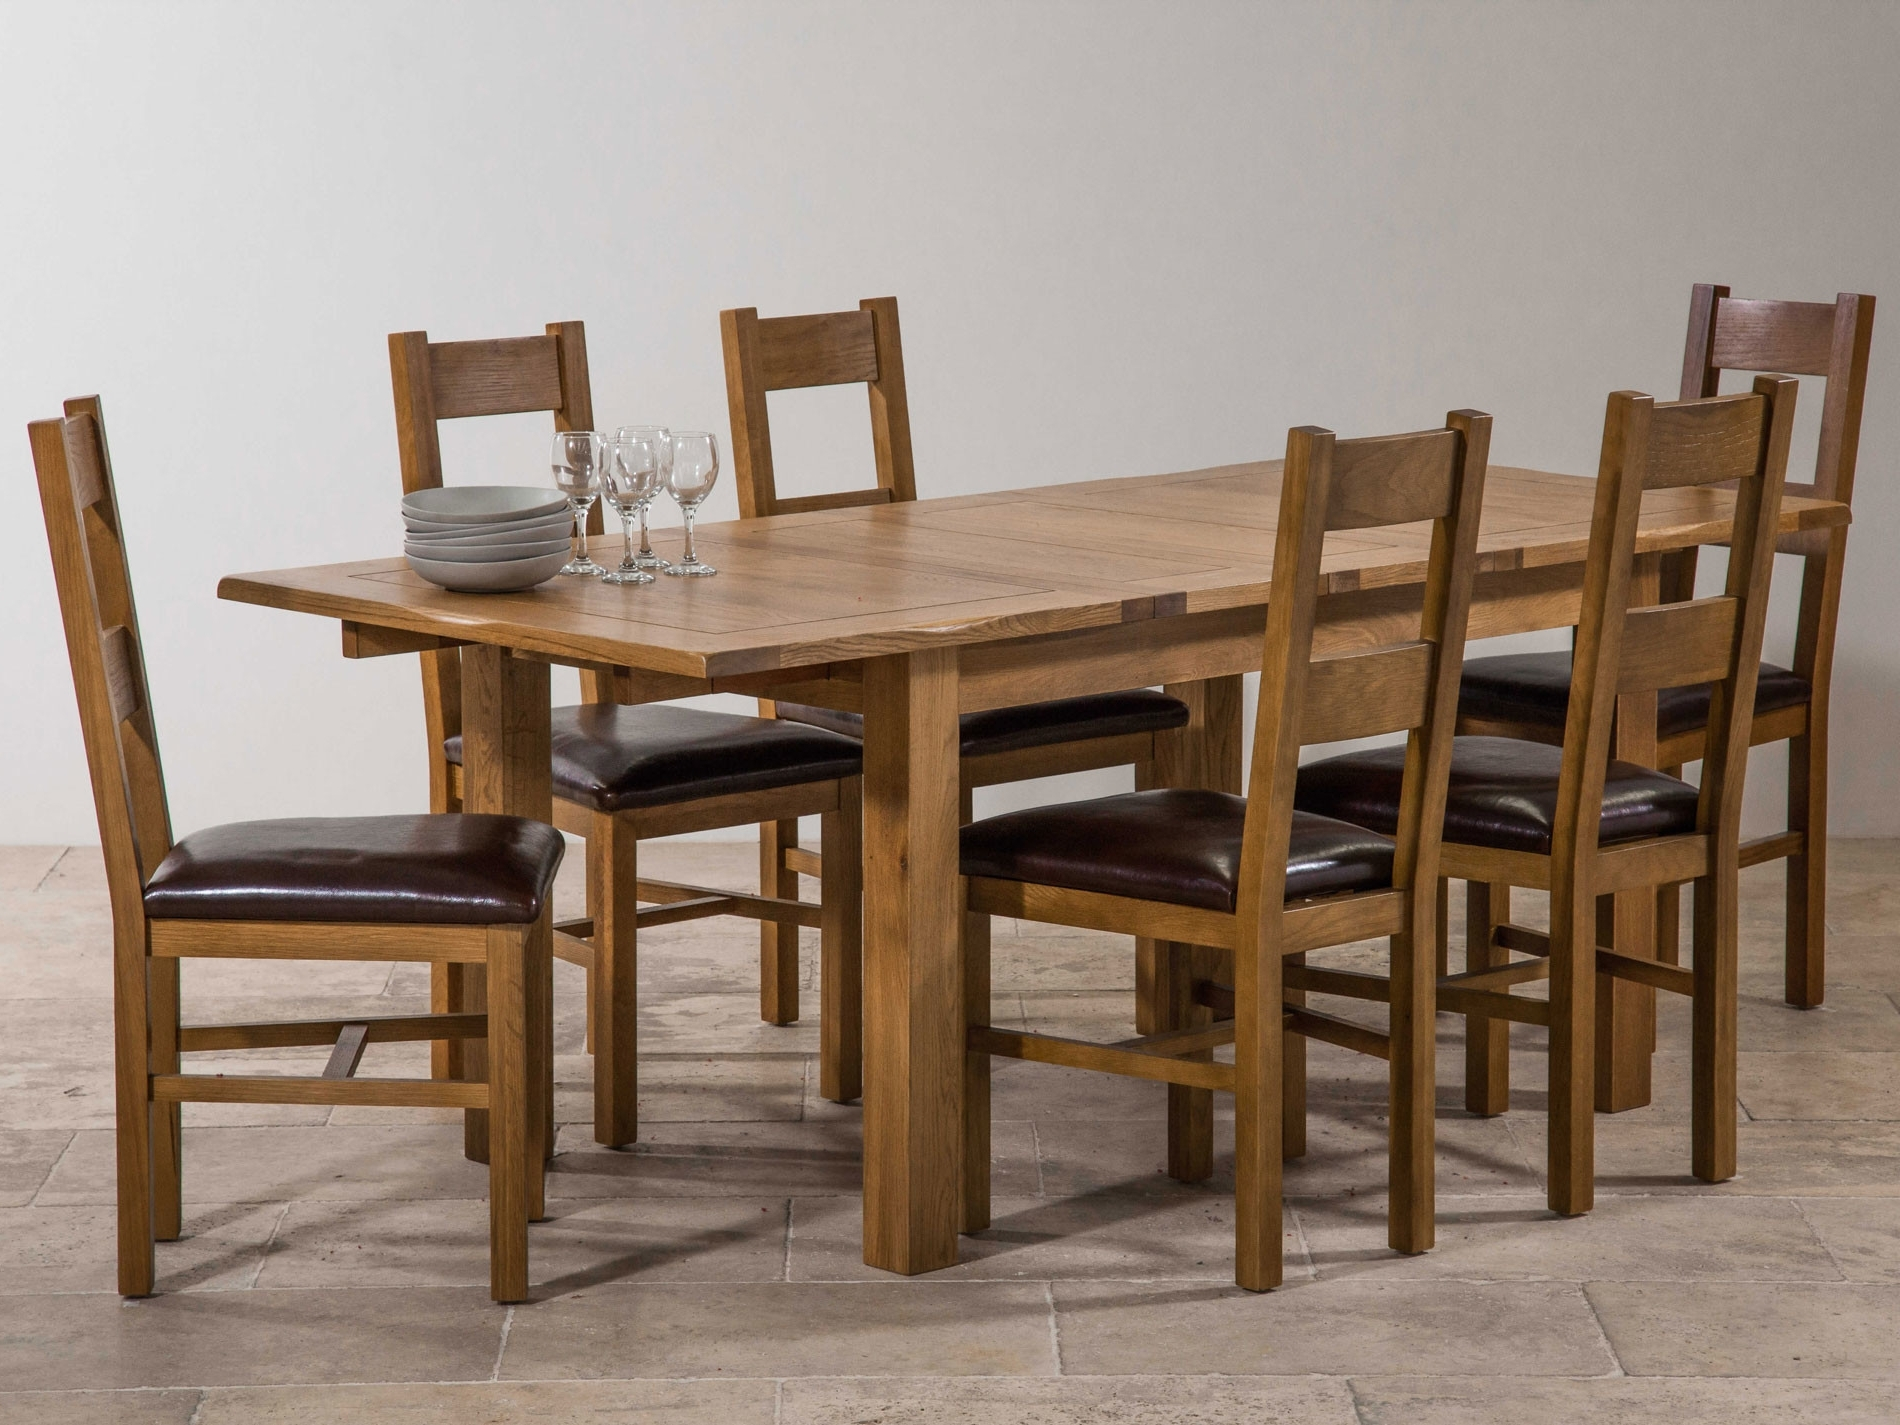 Extending Dining Tables Set regarding Trendy Extending Dining Room Table And Chairs Lovely Rustic Solid Oak